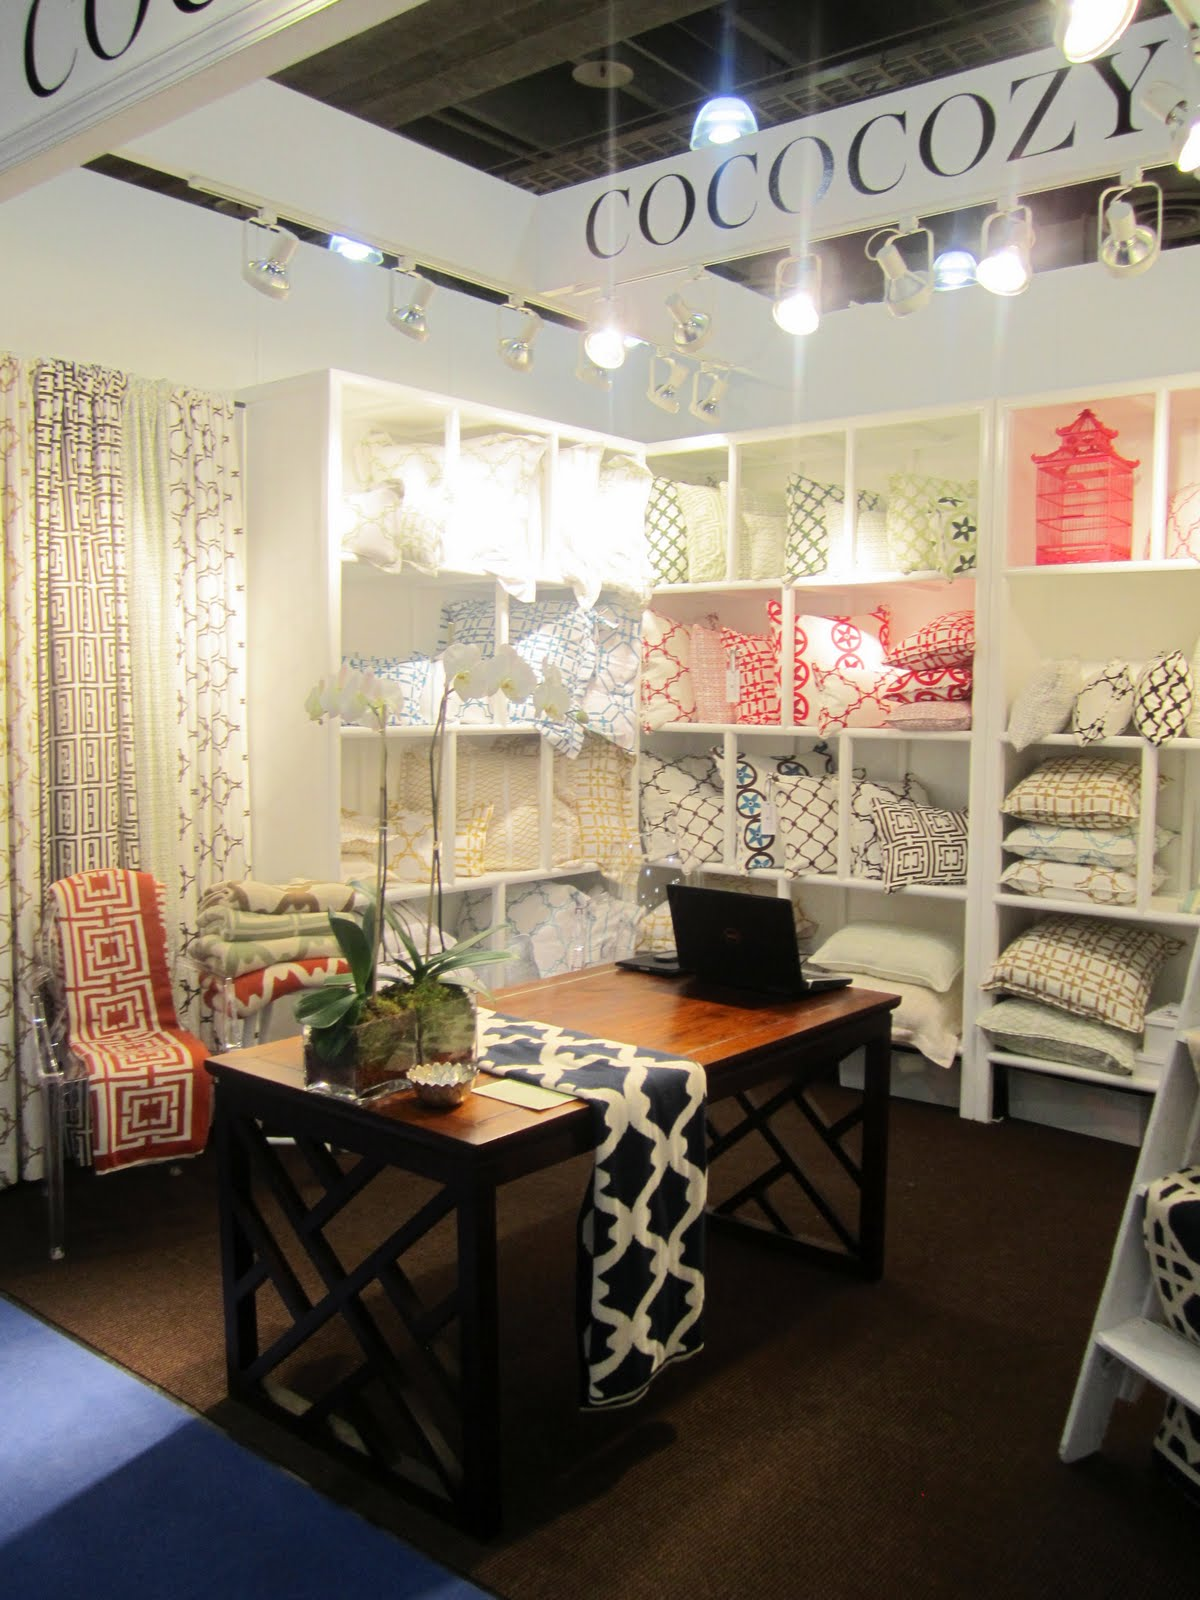 Designing a brand cococozy 3 d at the new york for New york international gift fair